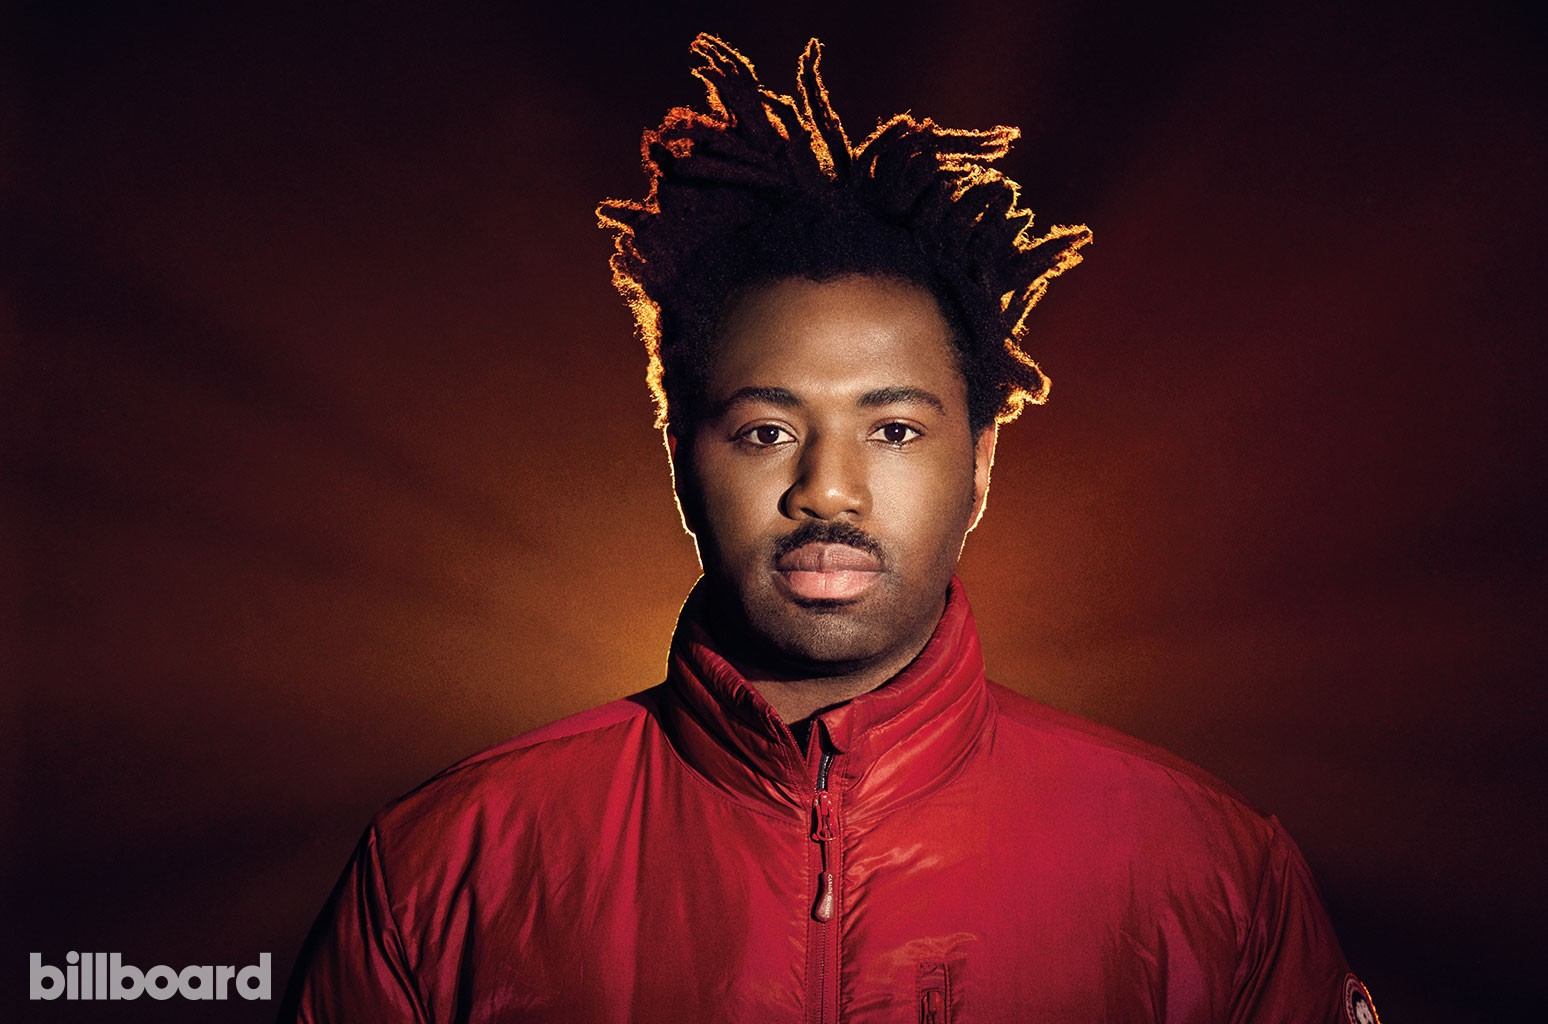 Sampha photographed Dec. 21, 2016, at Loft Studios in London.